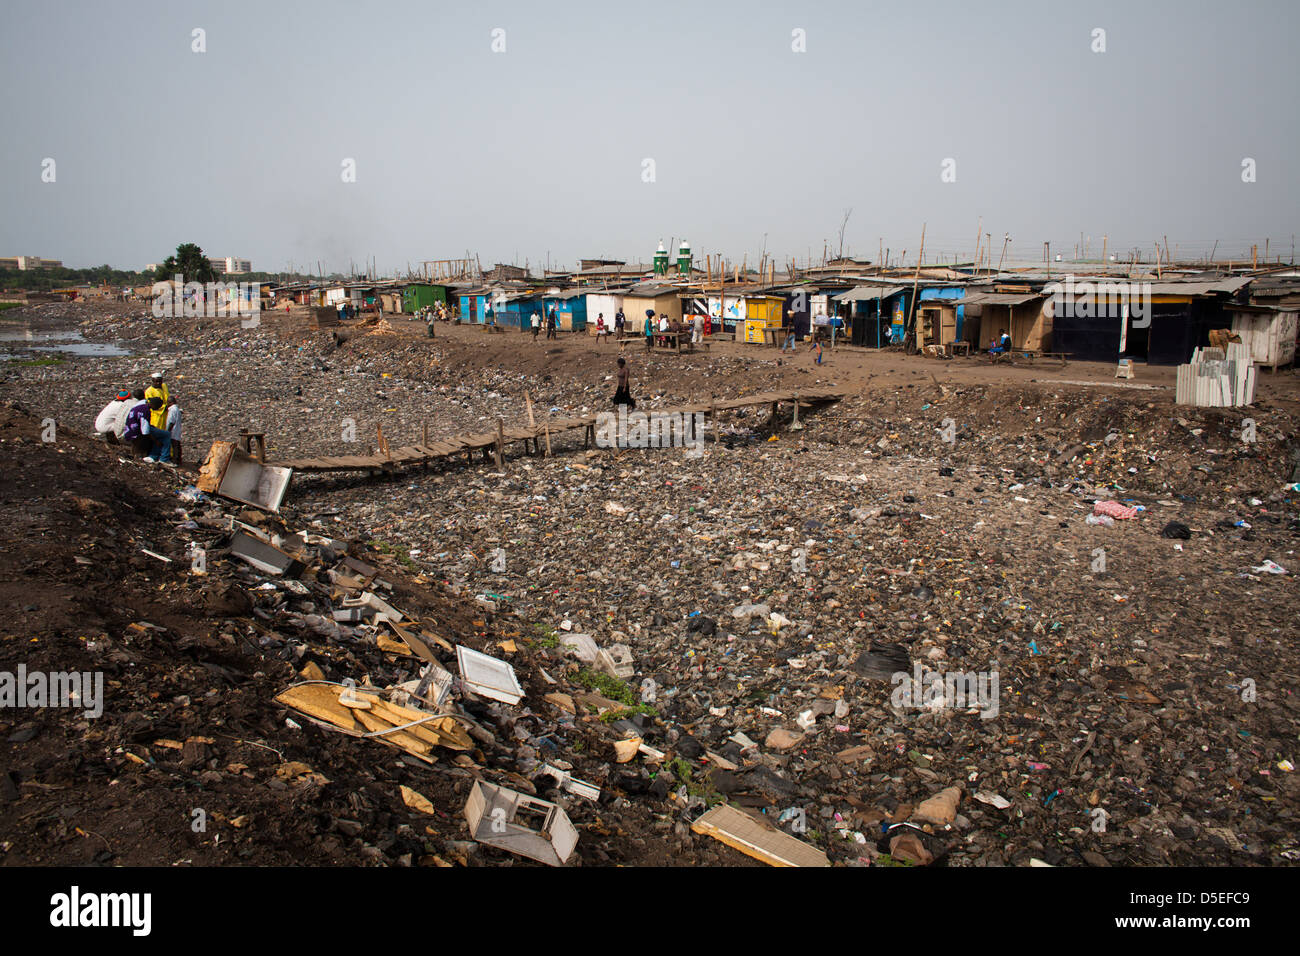 A heavily polluted river in the Agbogbloshie suburb of Accra, Ghana. - Stock Image